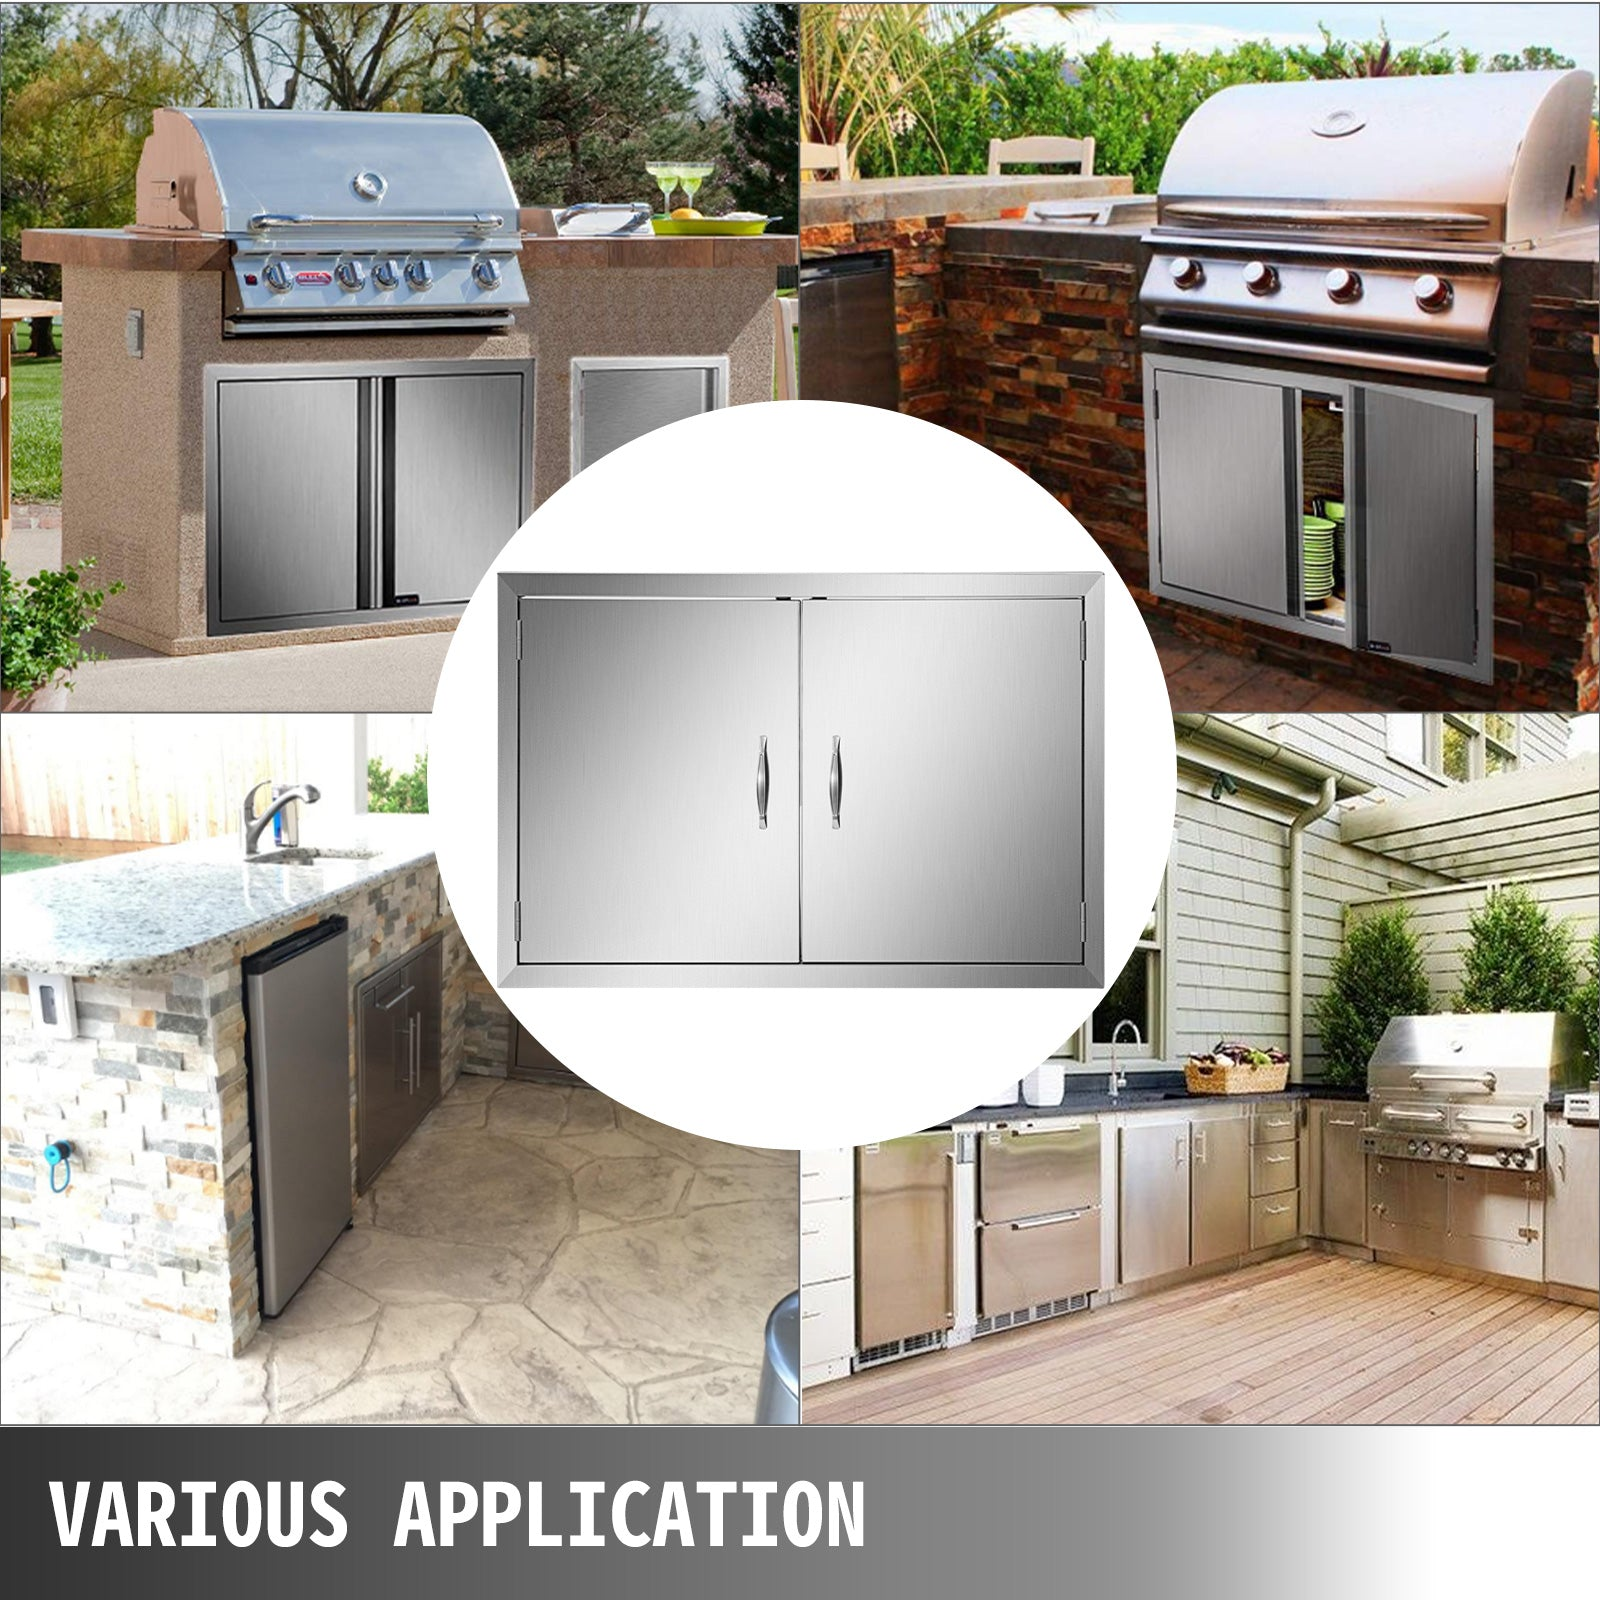 39wx26h Stainless Steel Walled Double Bbq Door W/ Handle Outdoor Bbq Fit Kitchen